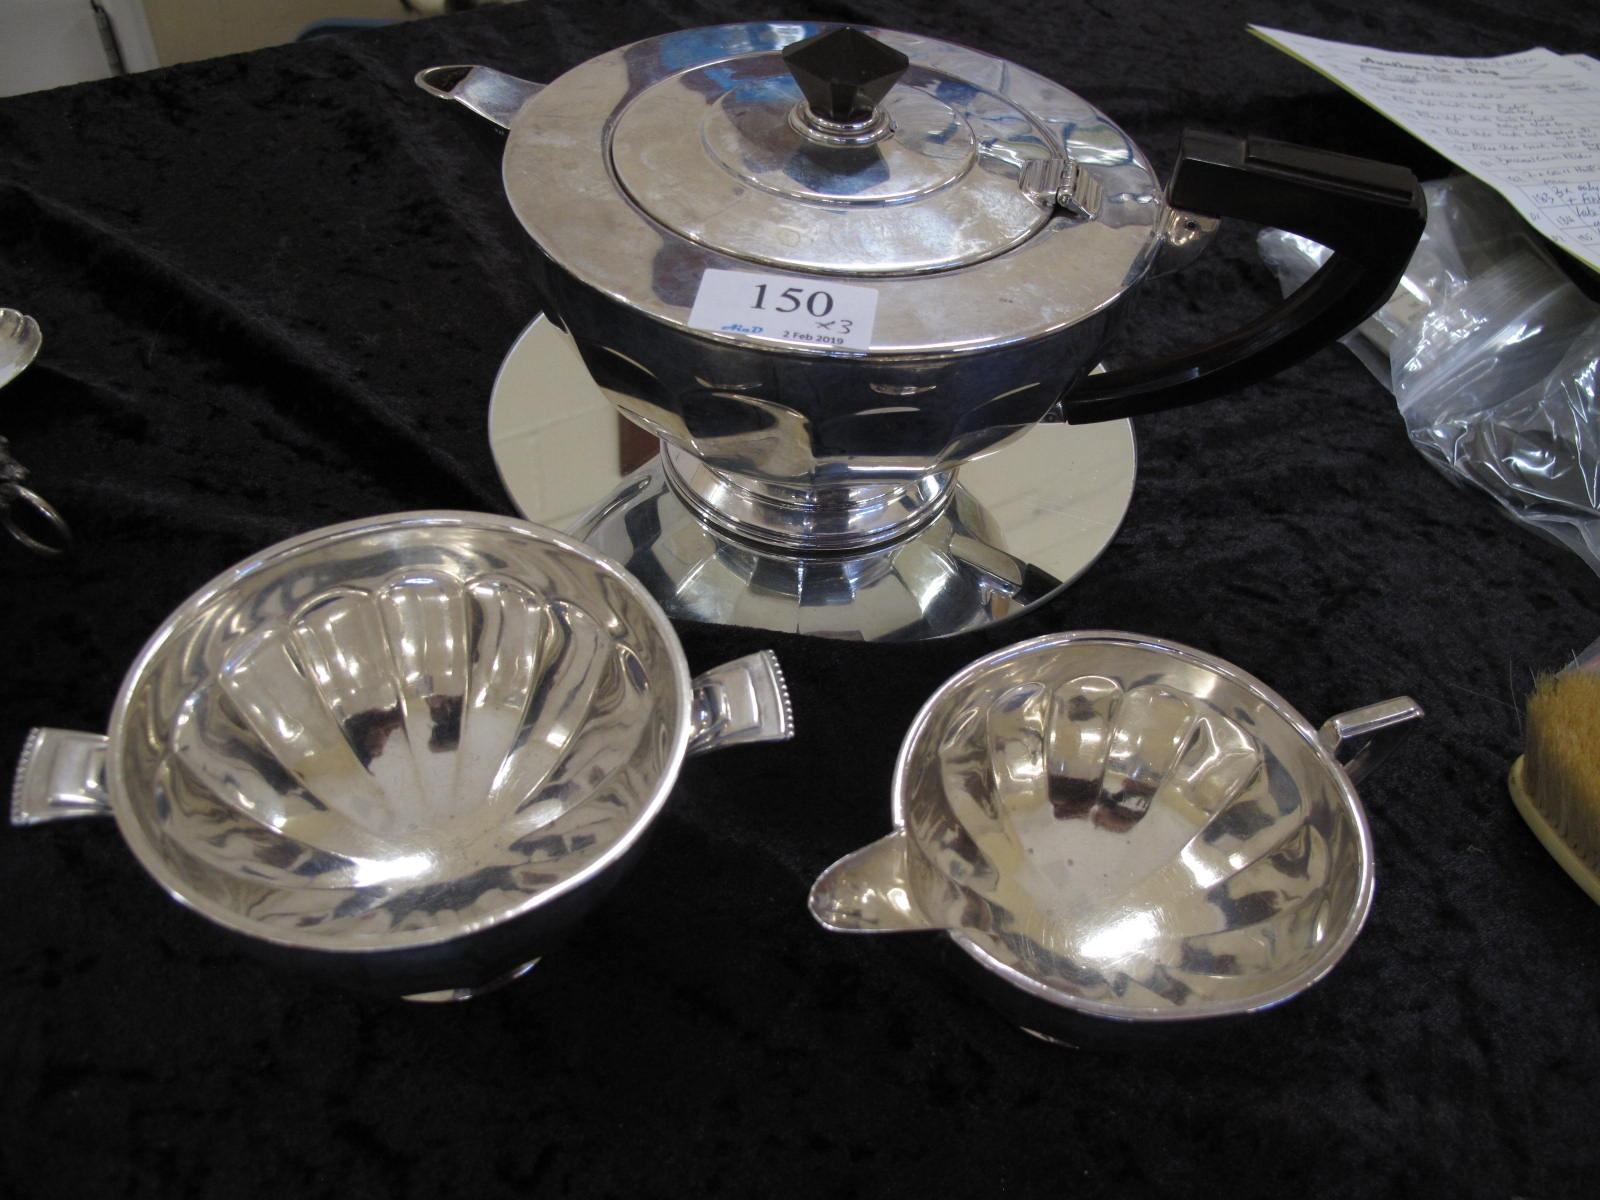 Lot 150 - Mappin and Webb Silver Tea Set - Sold for £320